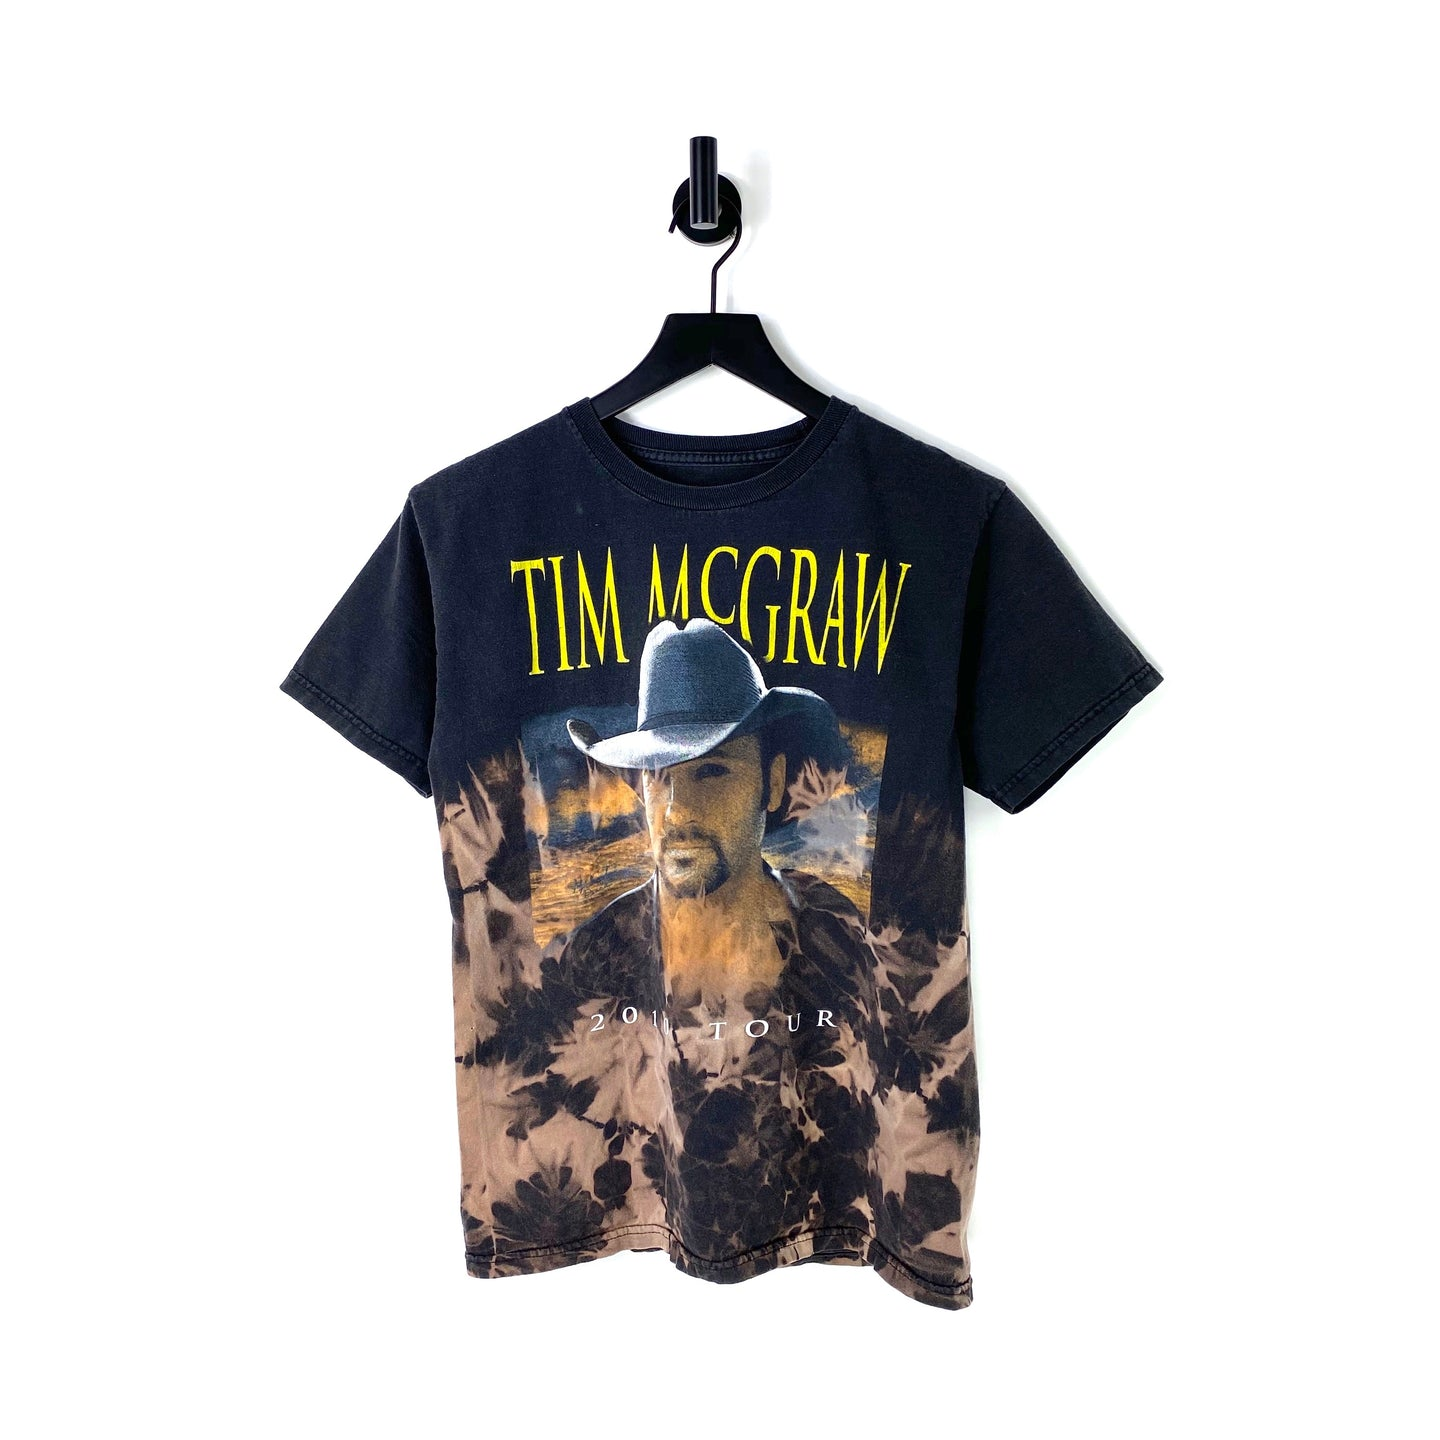 Tim McGraw T Shirt - S